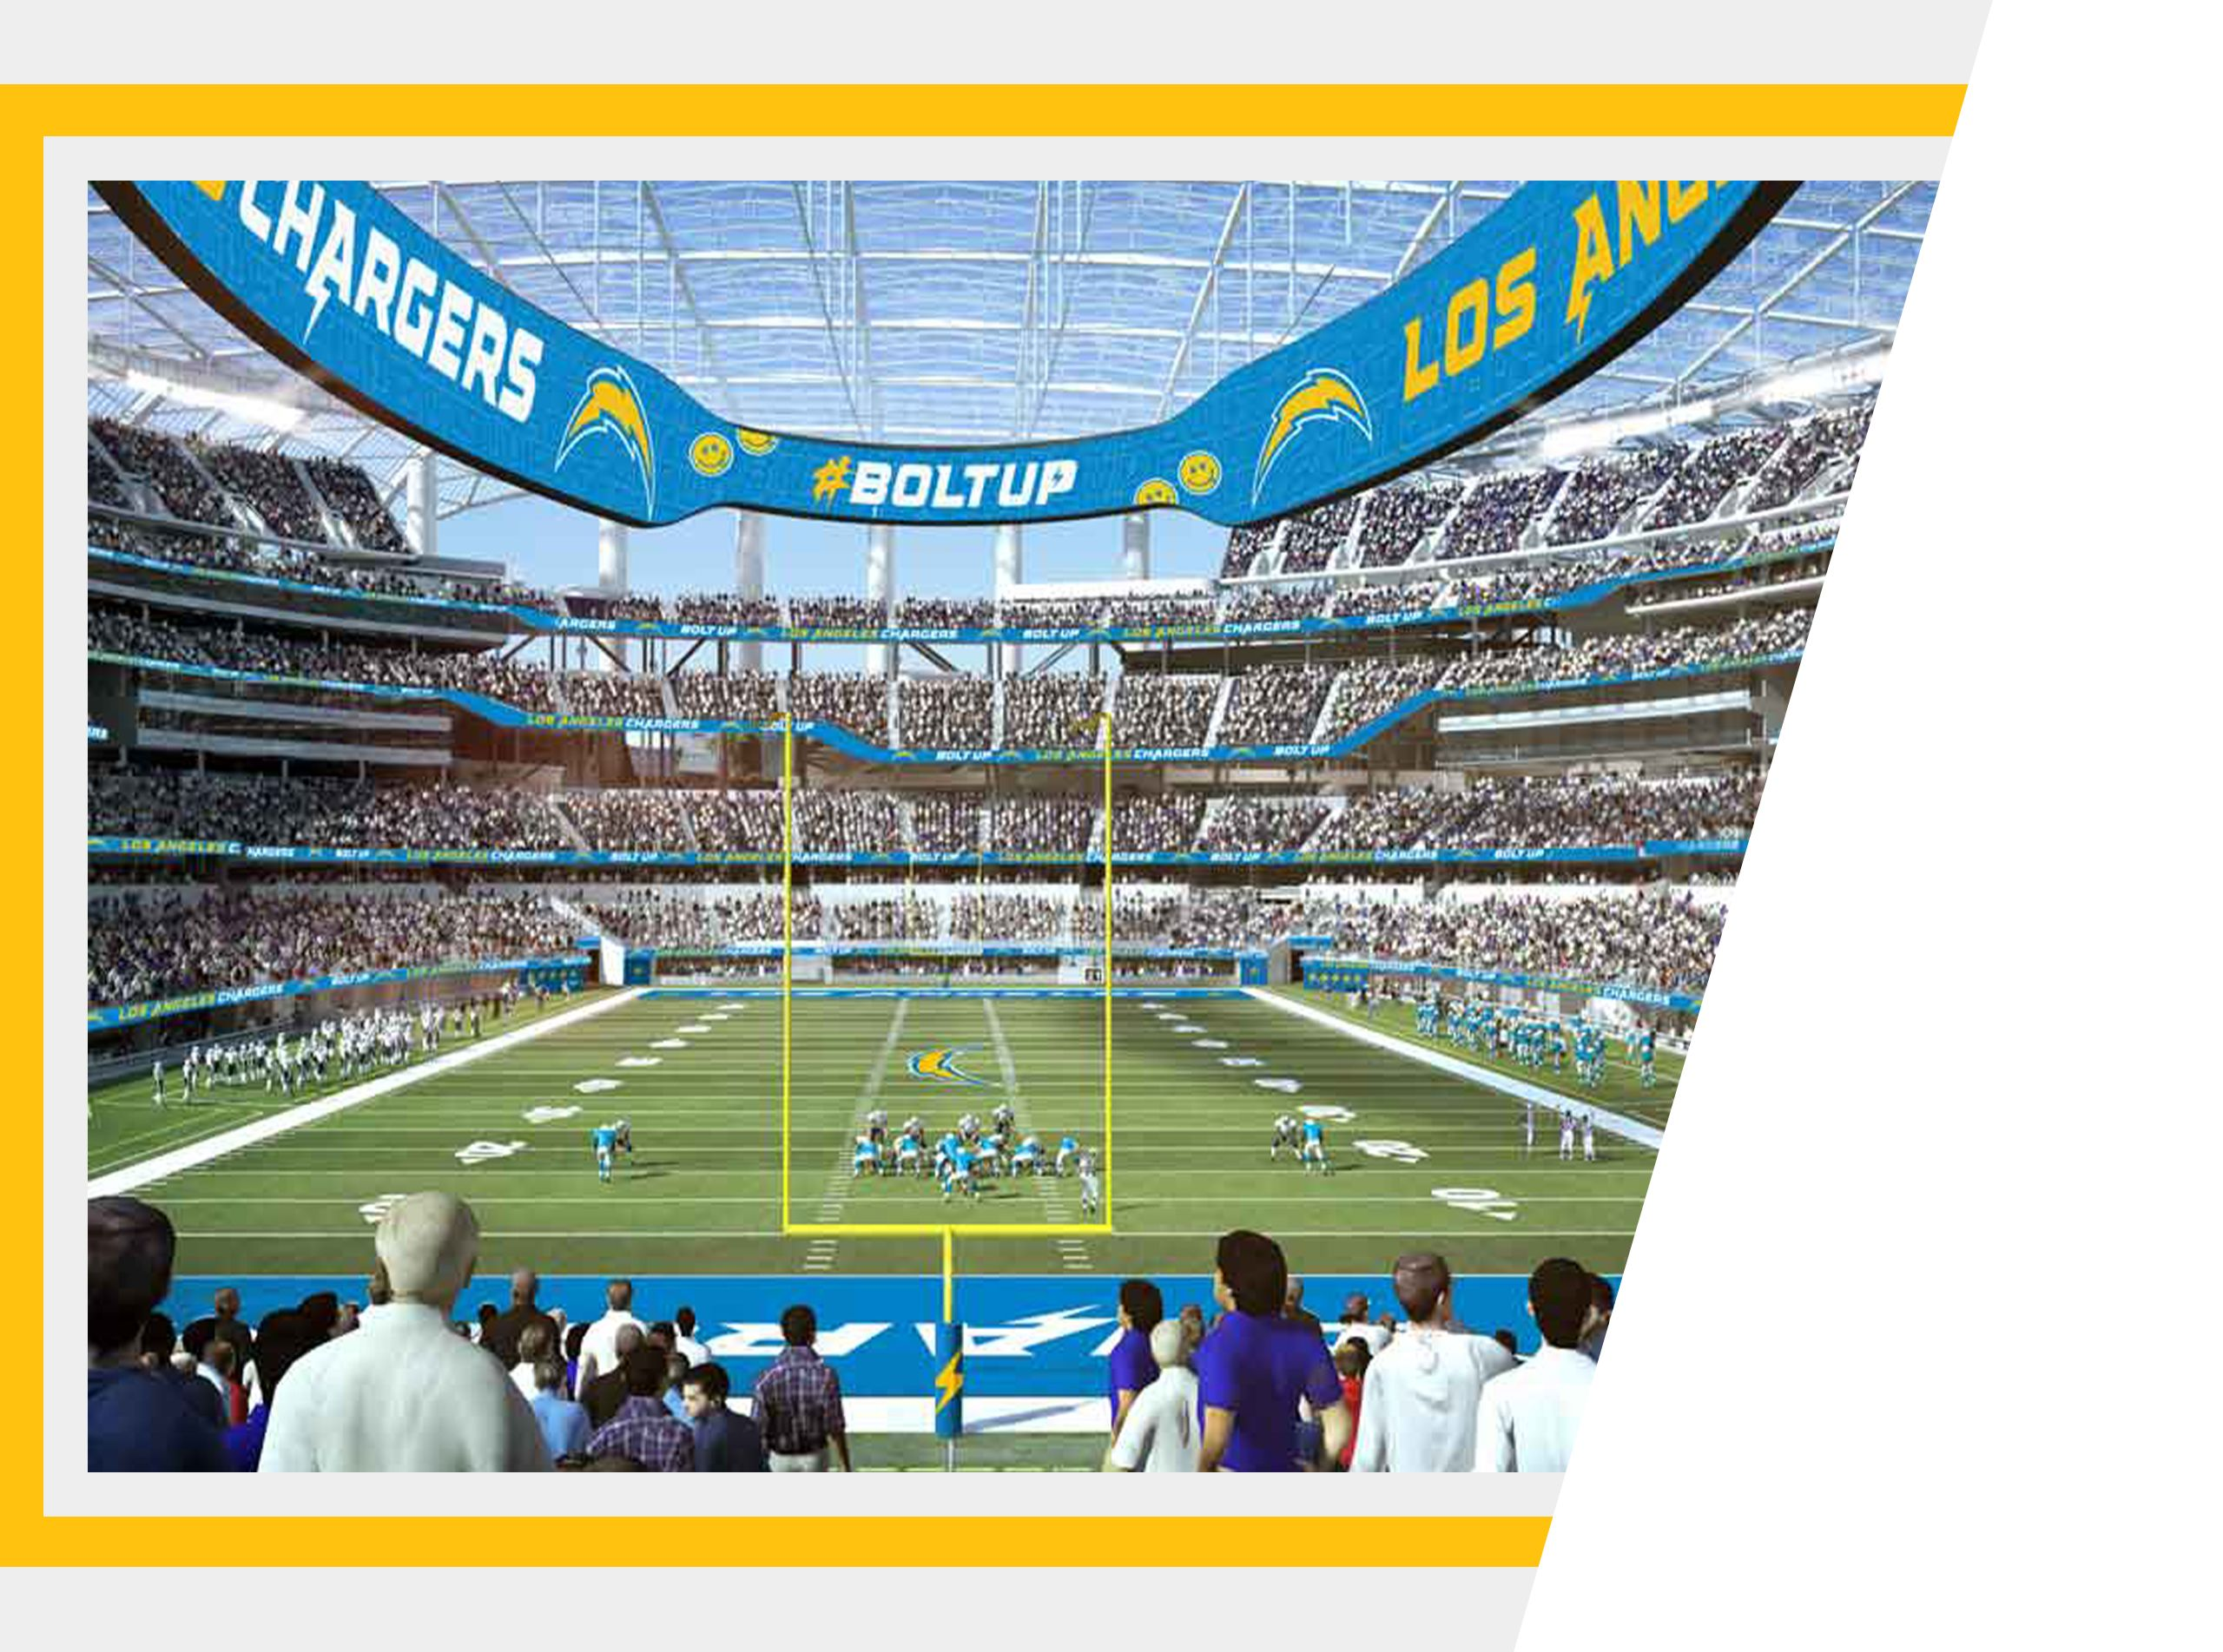 Chargers Seating Map Benefits Los Angeles Chargers Chargers Com